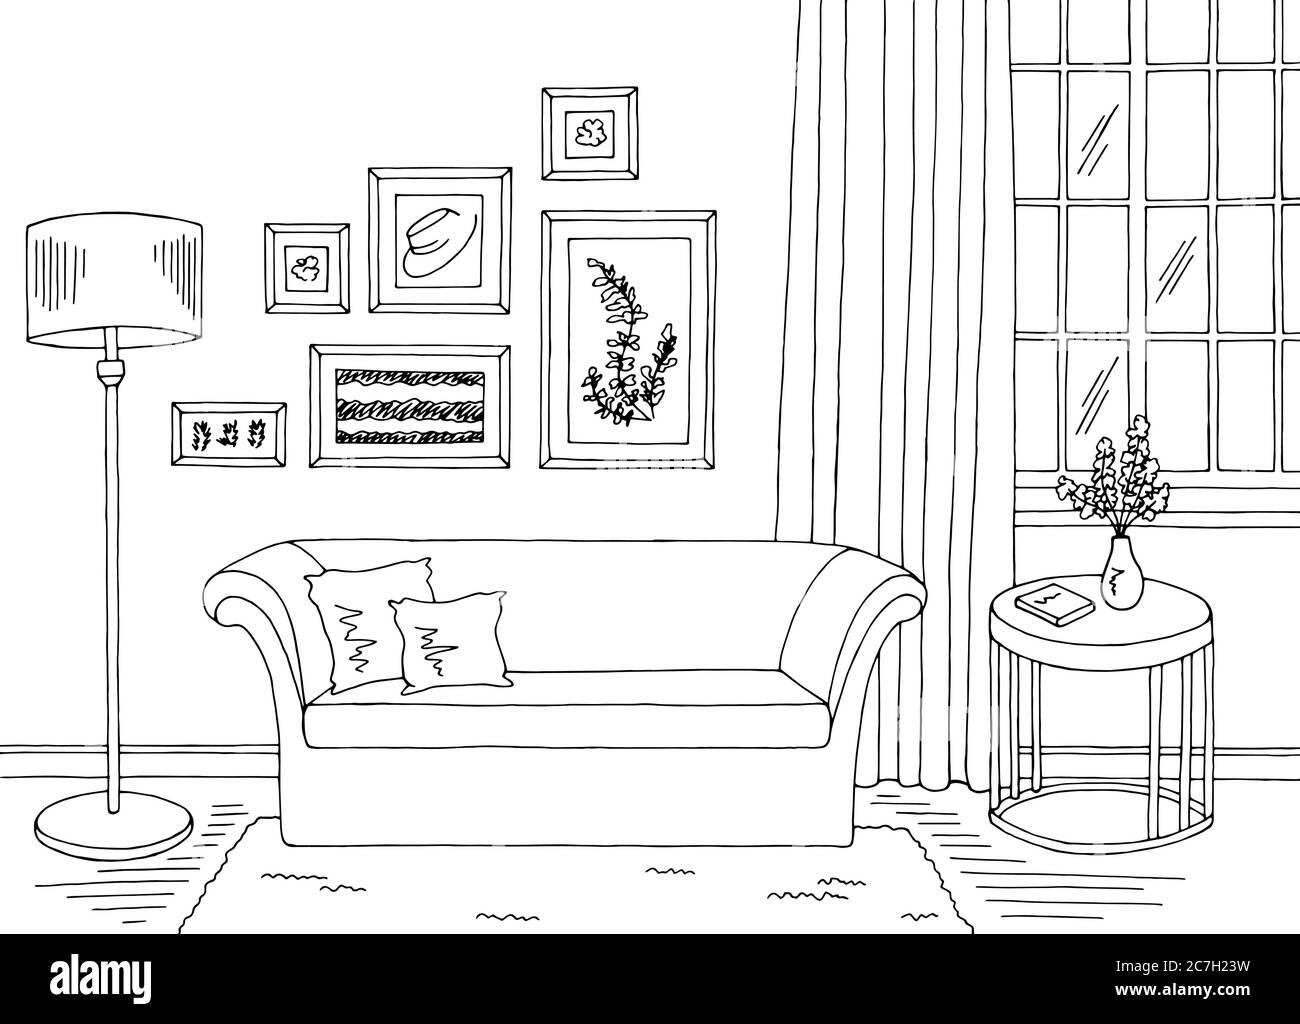 Living Room Graphic Black White Home Interior Sketch Illustration Vector Stock Vector Image Art Alamy